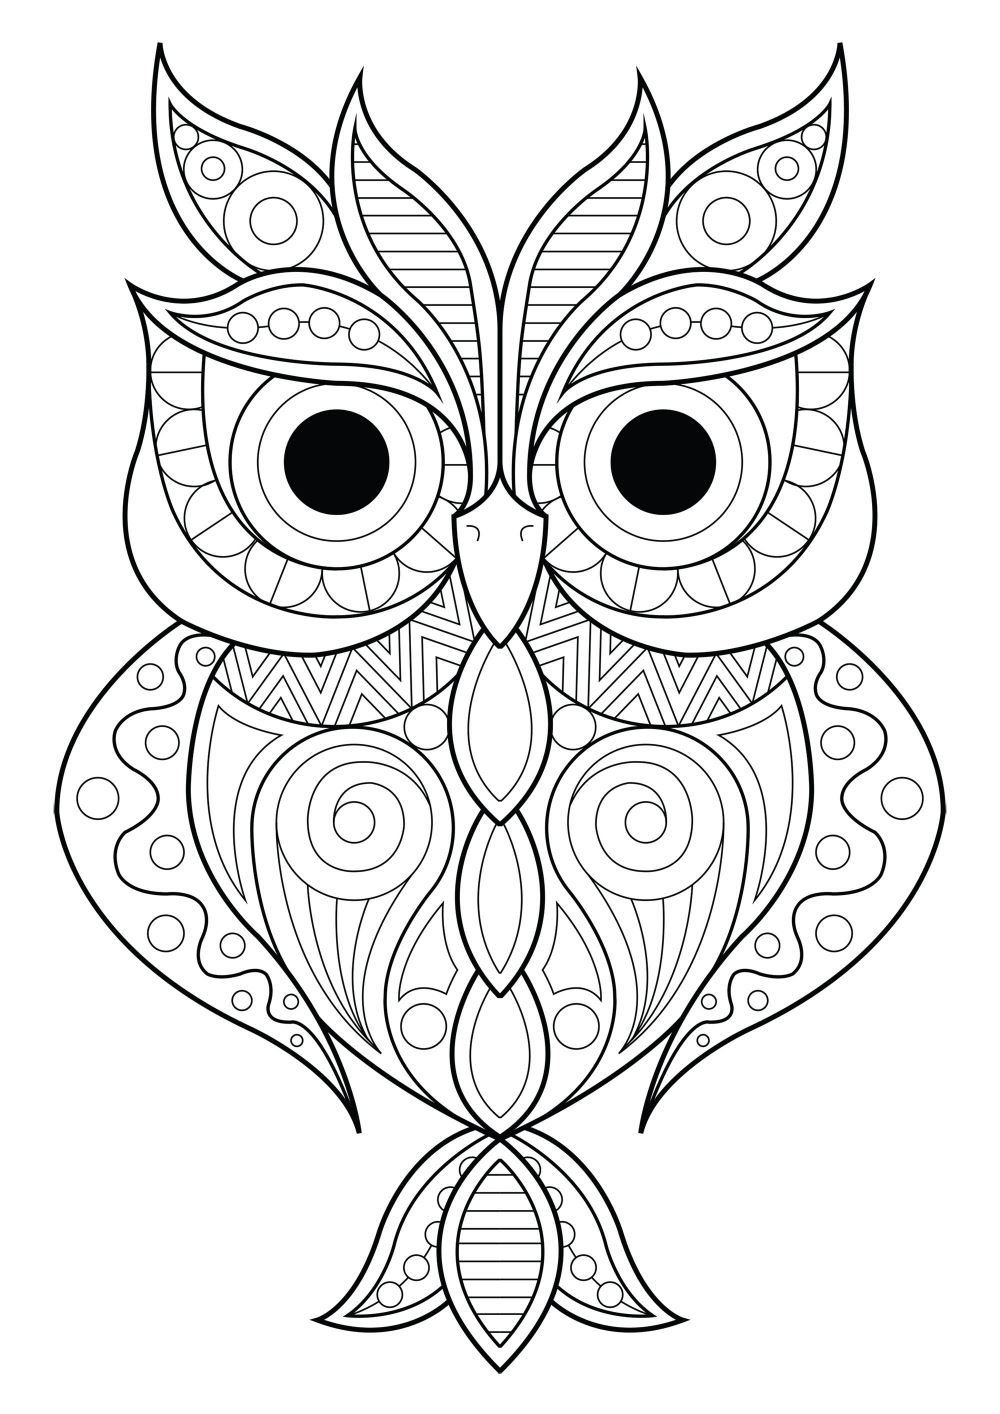 Owl simple patterns 2 - Owl with various different ...